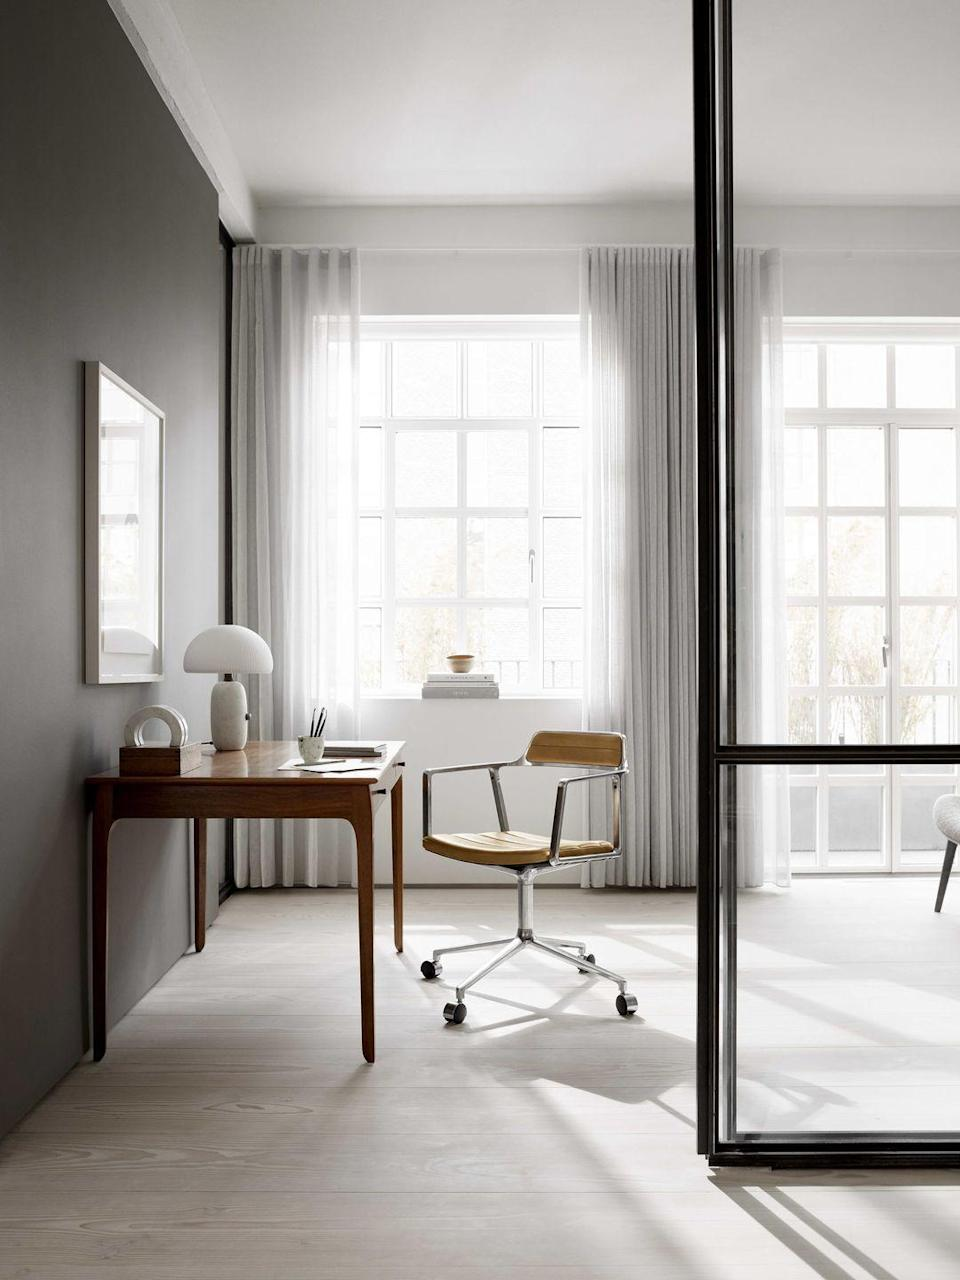 """<p>Vipp's first-ever chair design, the 'Vipp Chair', has been updated with a new swivel base and castors, rendering it a stylish, practical and comfortable option suitable for any home office. From £839, <a href=""""https://vipp.com/en/products/swivel-chair-w-gliders"""" rel=""""nofollow noopener"""" target=""""_blank"""" data-ylk=""""slk:vipp.com"""" class=""""link rapid-noclick-resp"""">vipp.com</a></p>"""